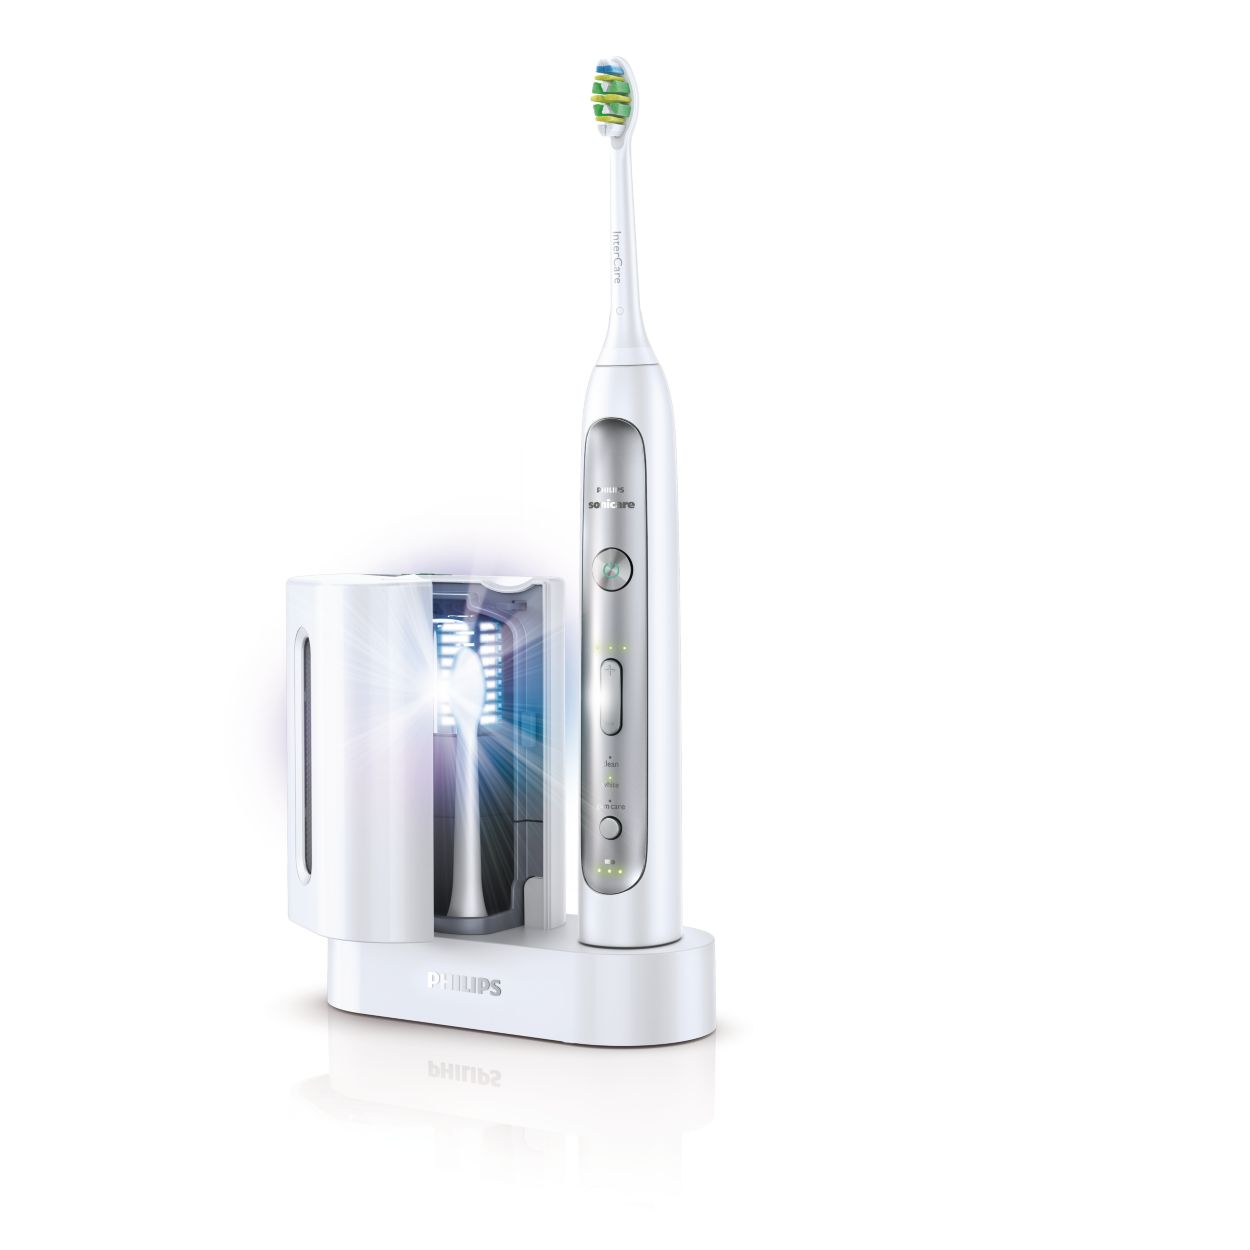 31, brush strokes per minute makes you want to smile, doesn't it? The Sonicare FlexCare+ offers a high-frequency clean that, when used as directed, can help reduce plaque more effectively than manual brushing after four weeks.